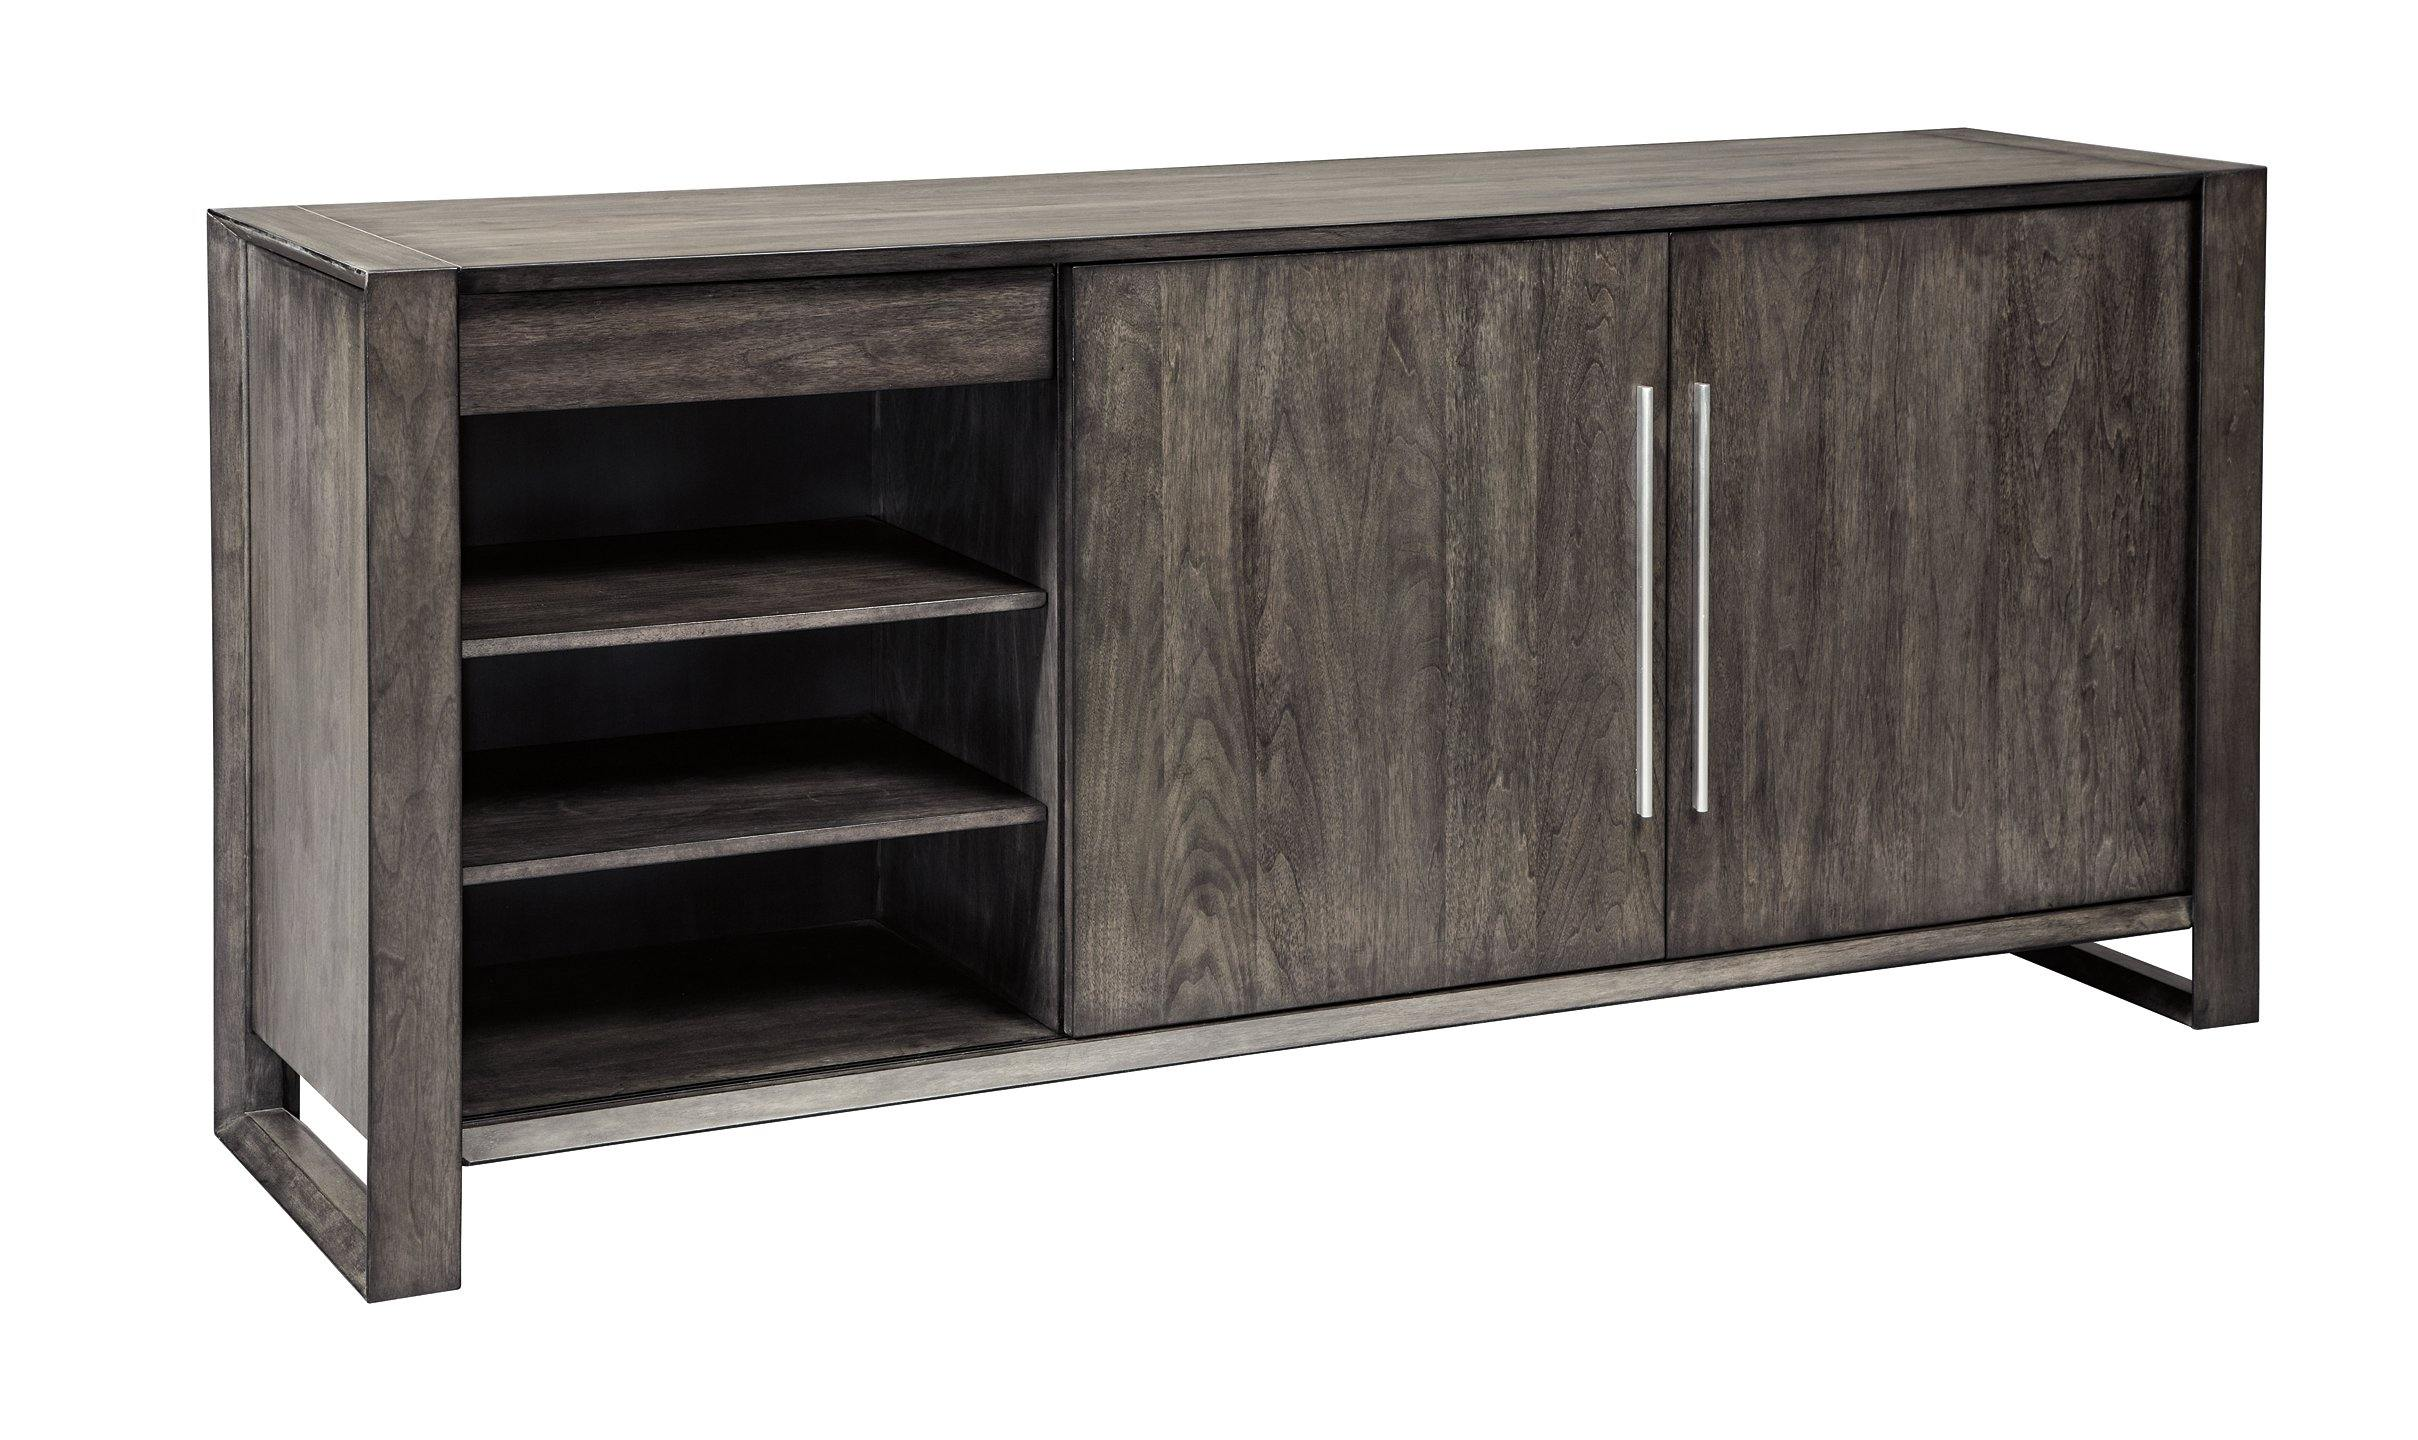 Gray Contemporary Chadoni Dining Server D624-60 By ashley - sofafair.com